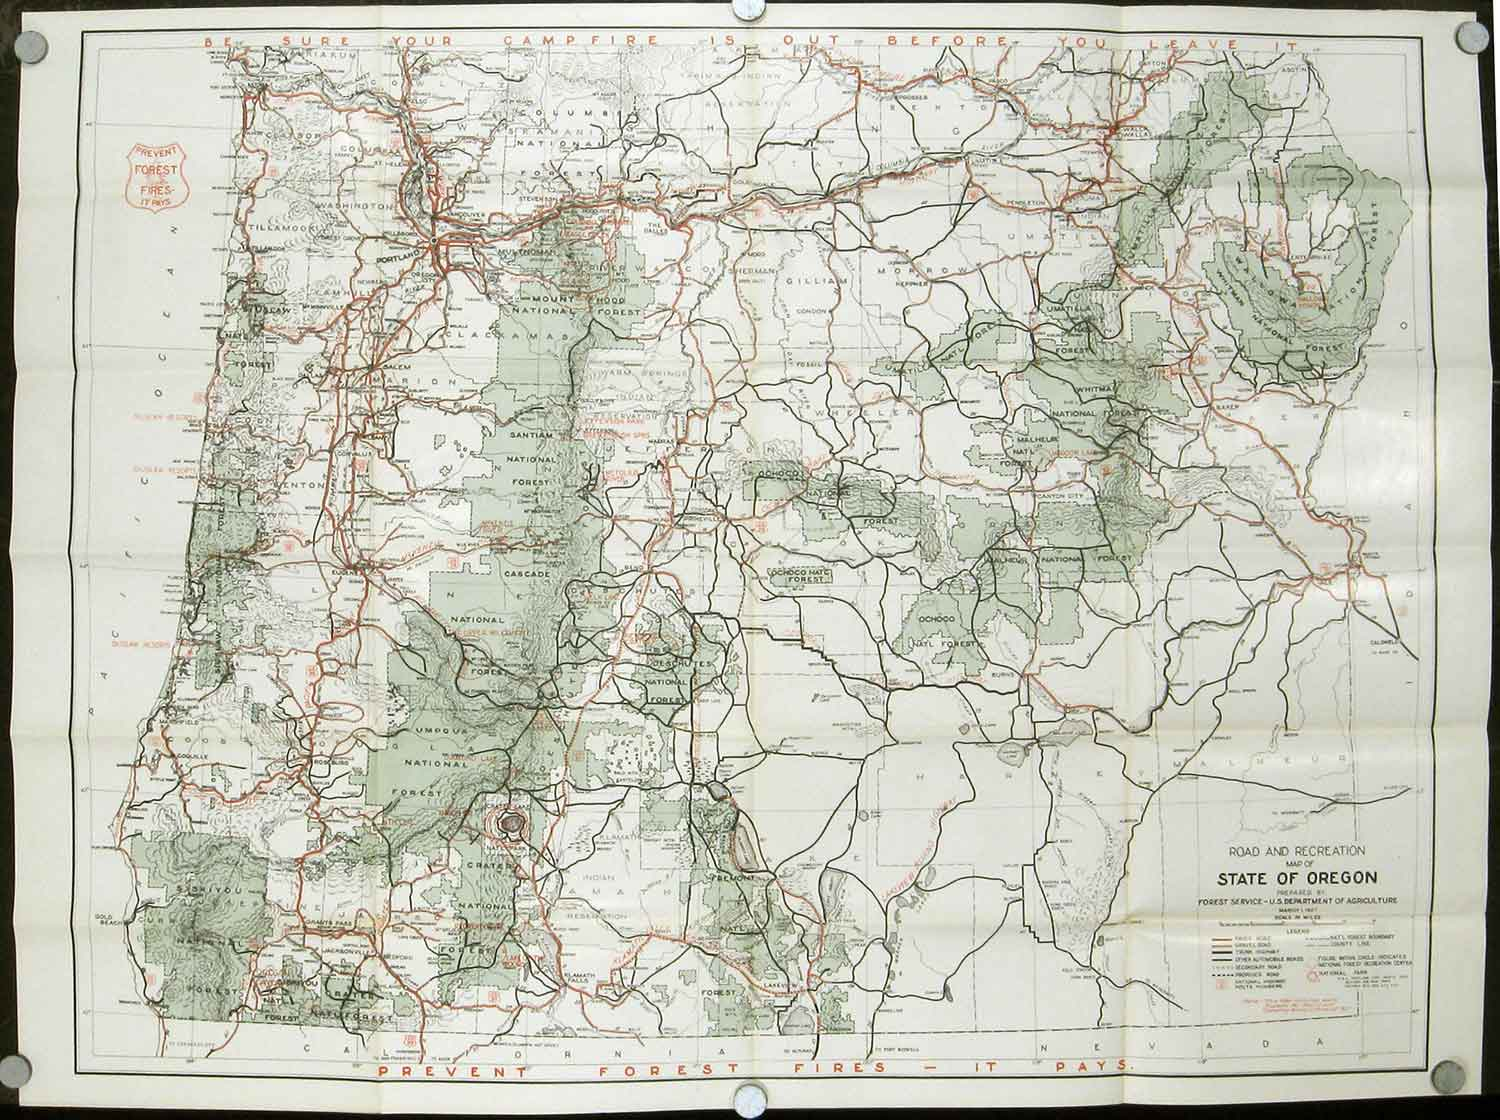 Road And Information Map For The National Forests Of Oregon US - Oregon map us